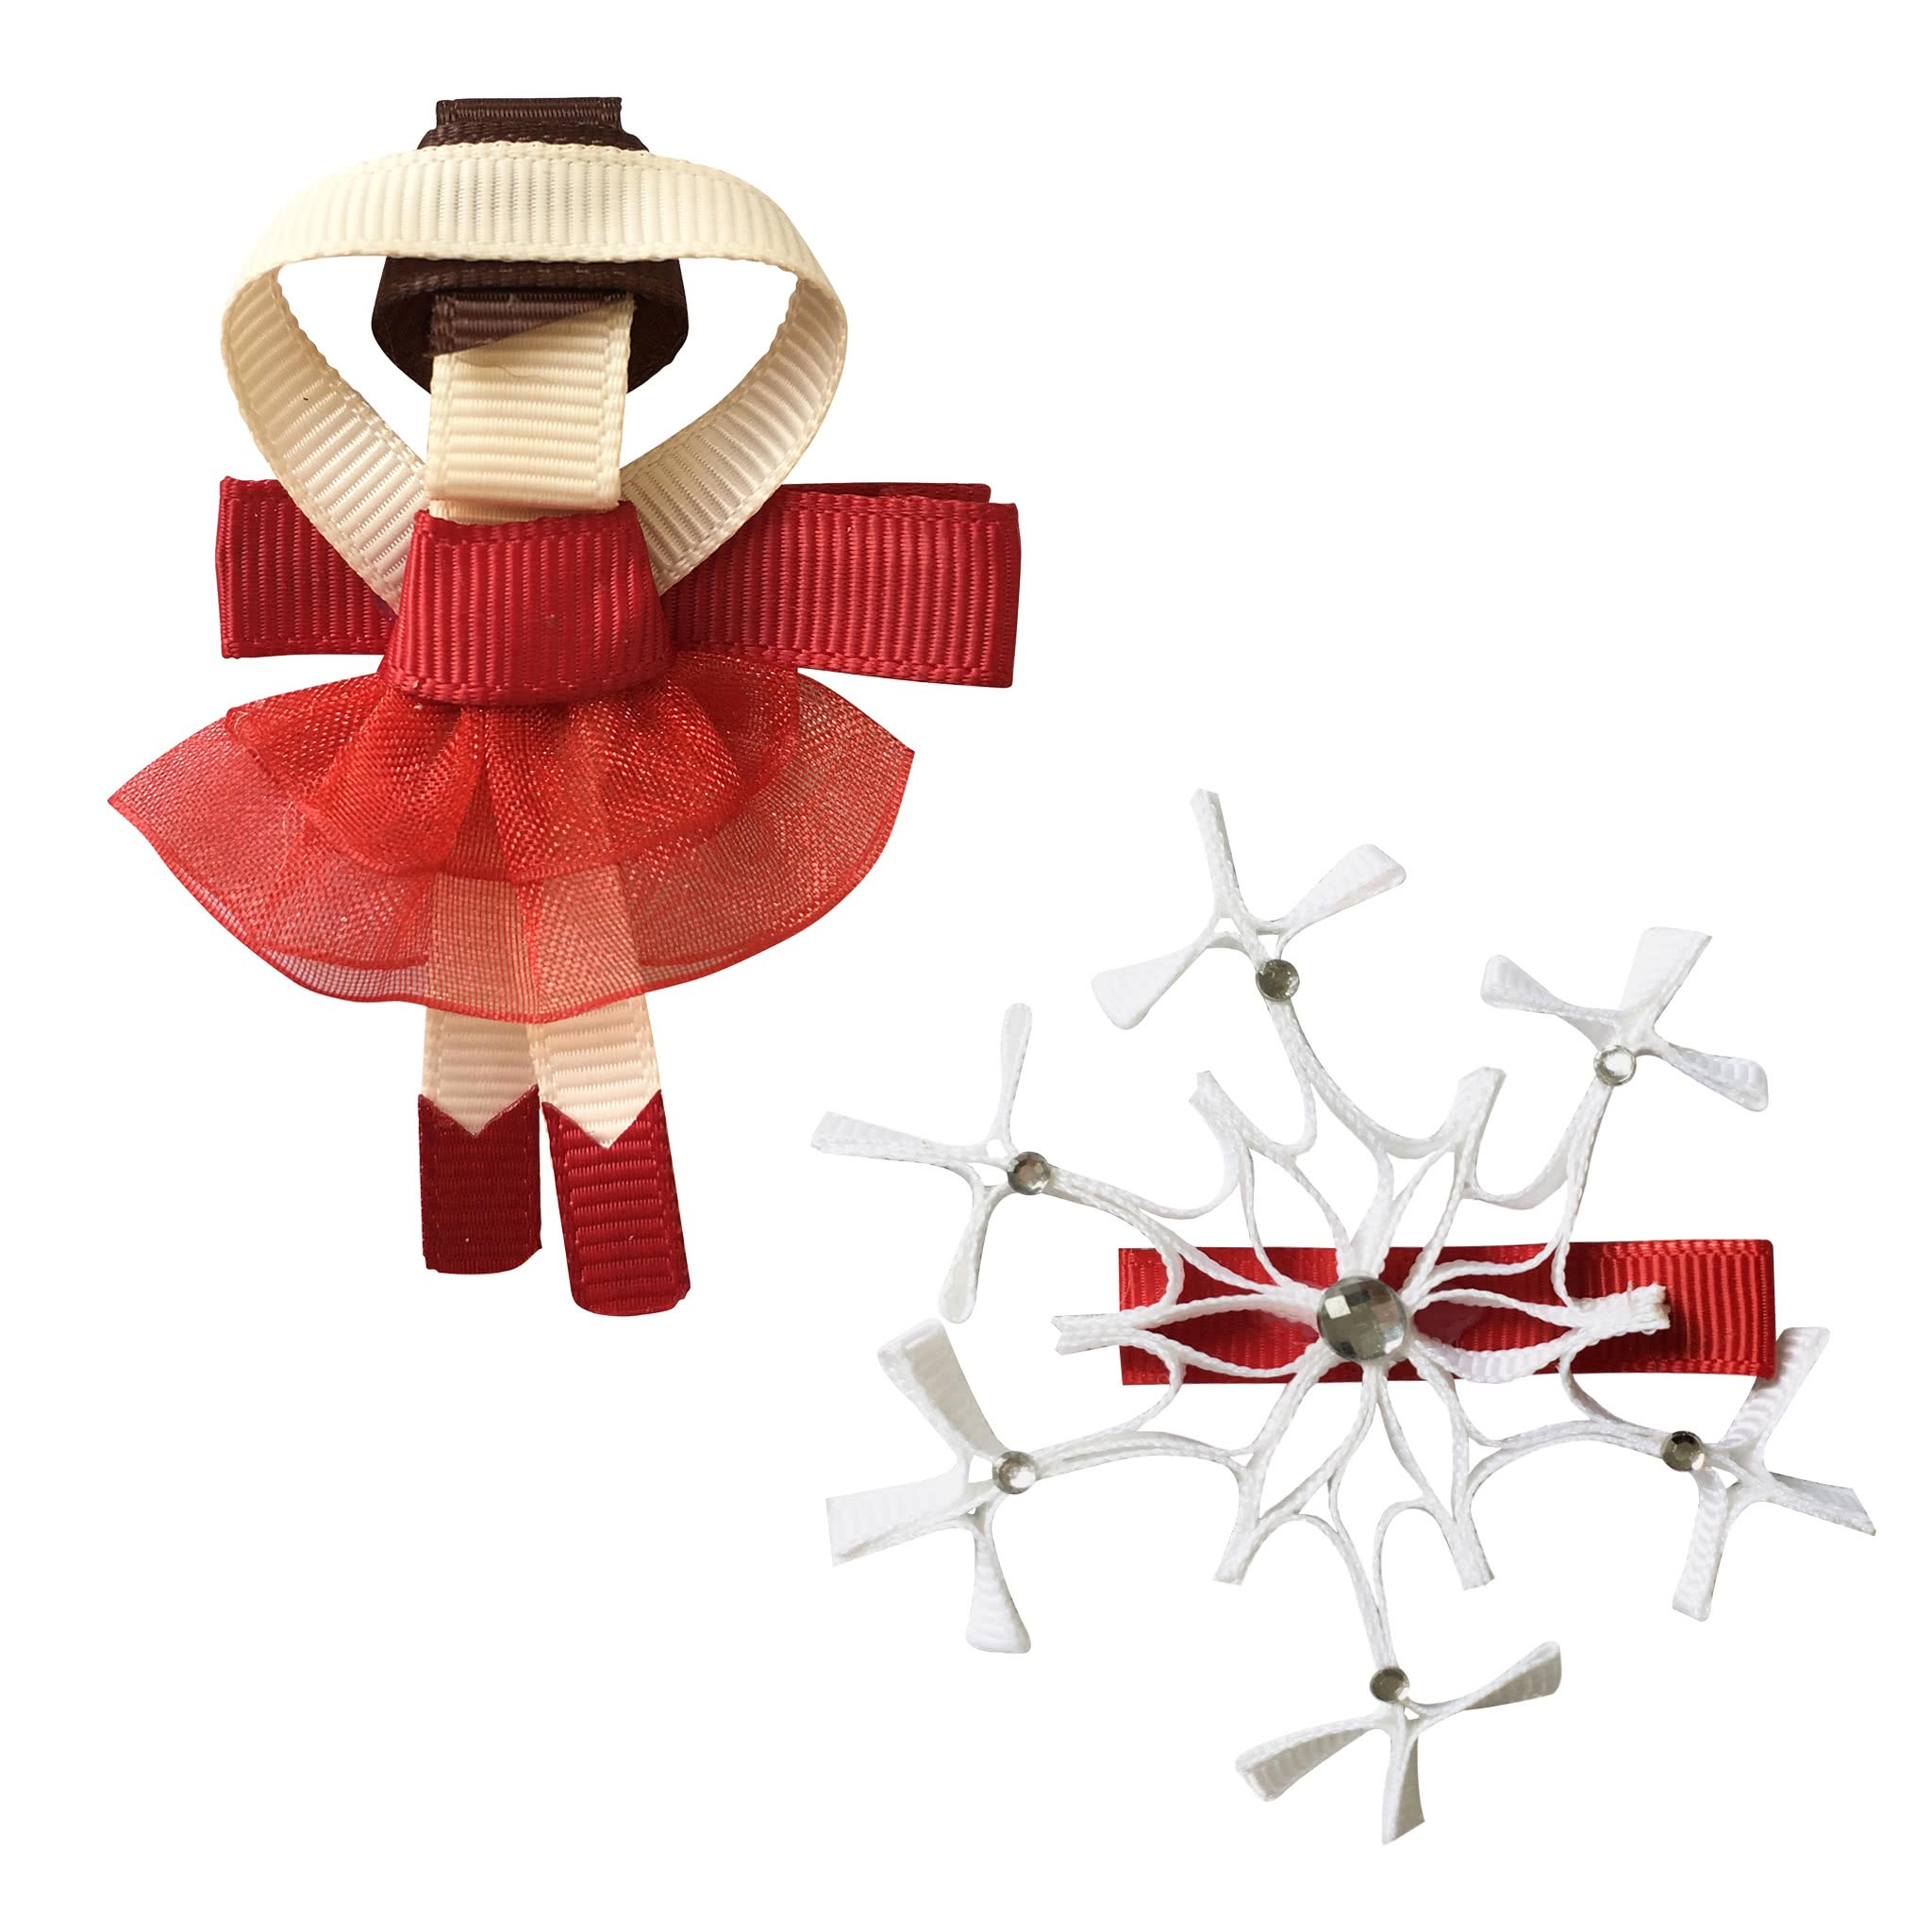 Image of Milledeux® Fairytale Christmas gift set - Ballerina and Snowflake - scarlet